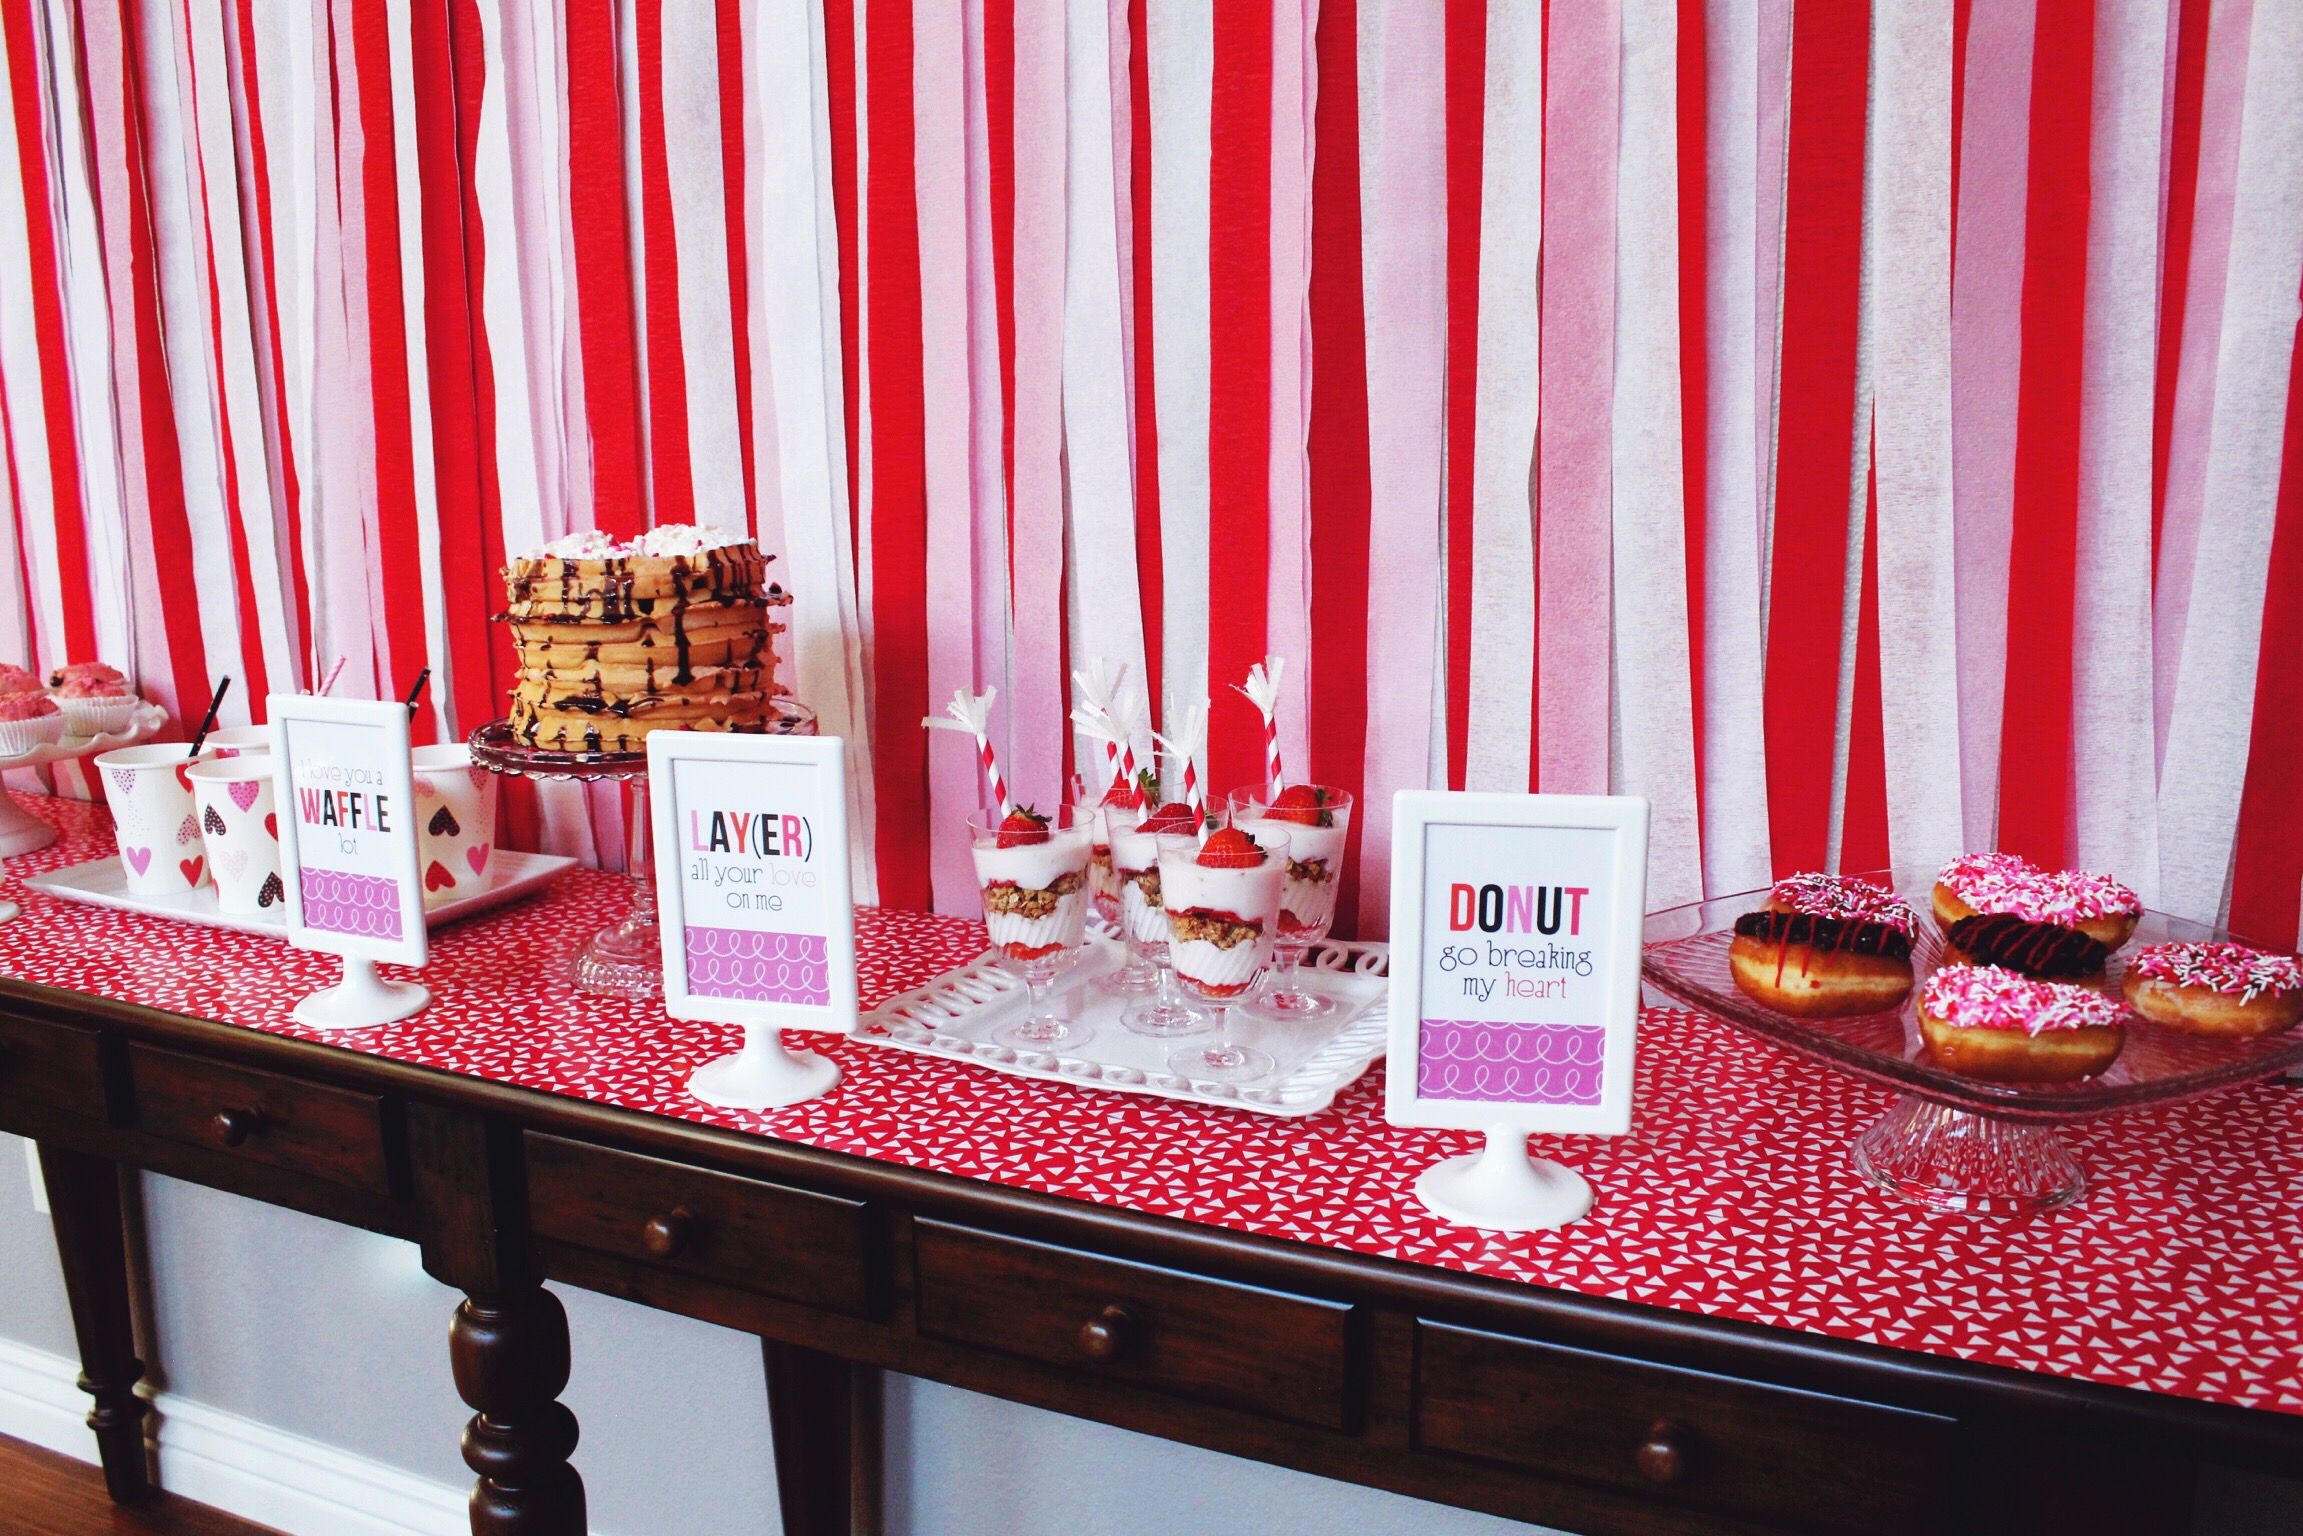 Valentine's Day Breakfast Party Inspiration Ideas_DOnuts_Waffles_Milk_Design Organize Party.JPG